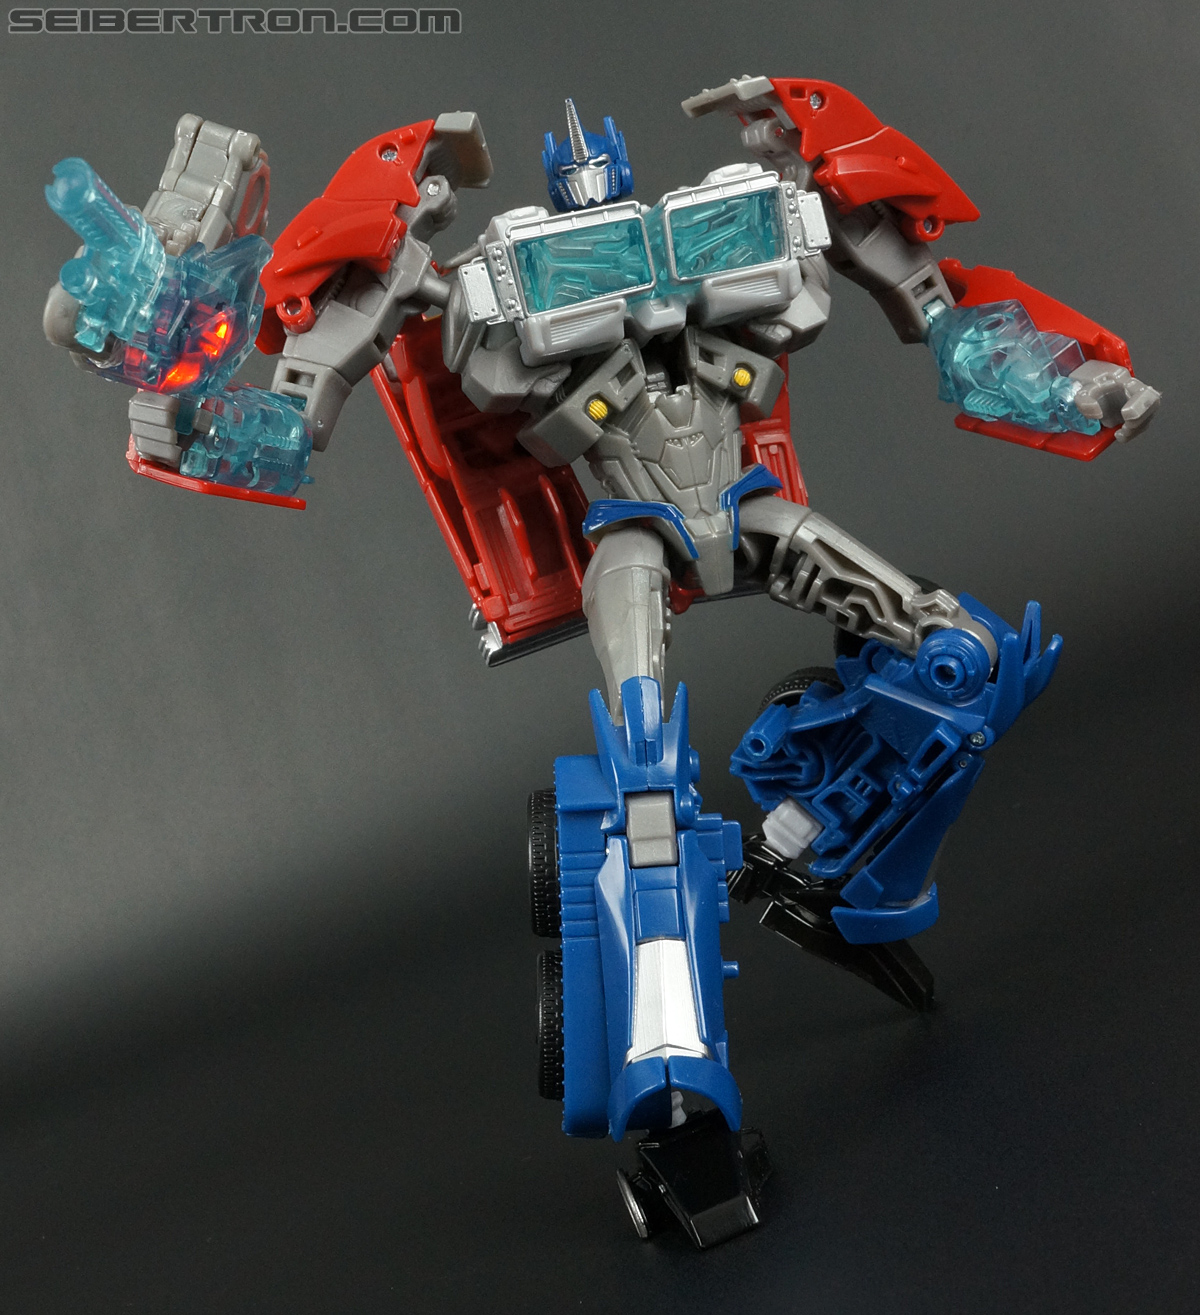 Transformers Prime: Robots In Disguise Optimus Prime (Image #126 of 176)